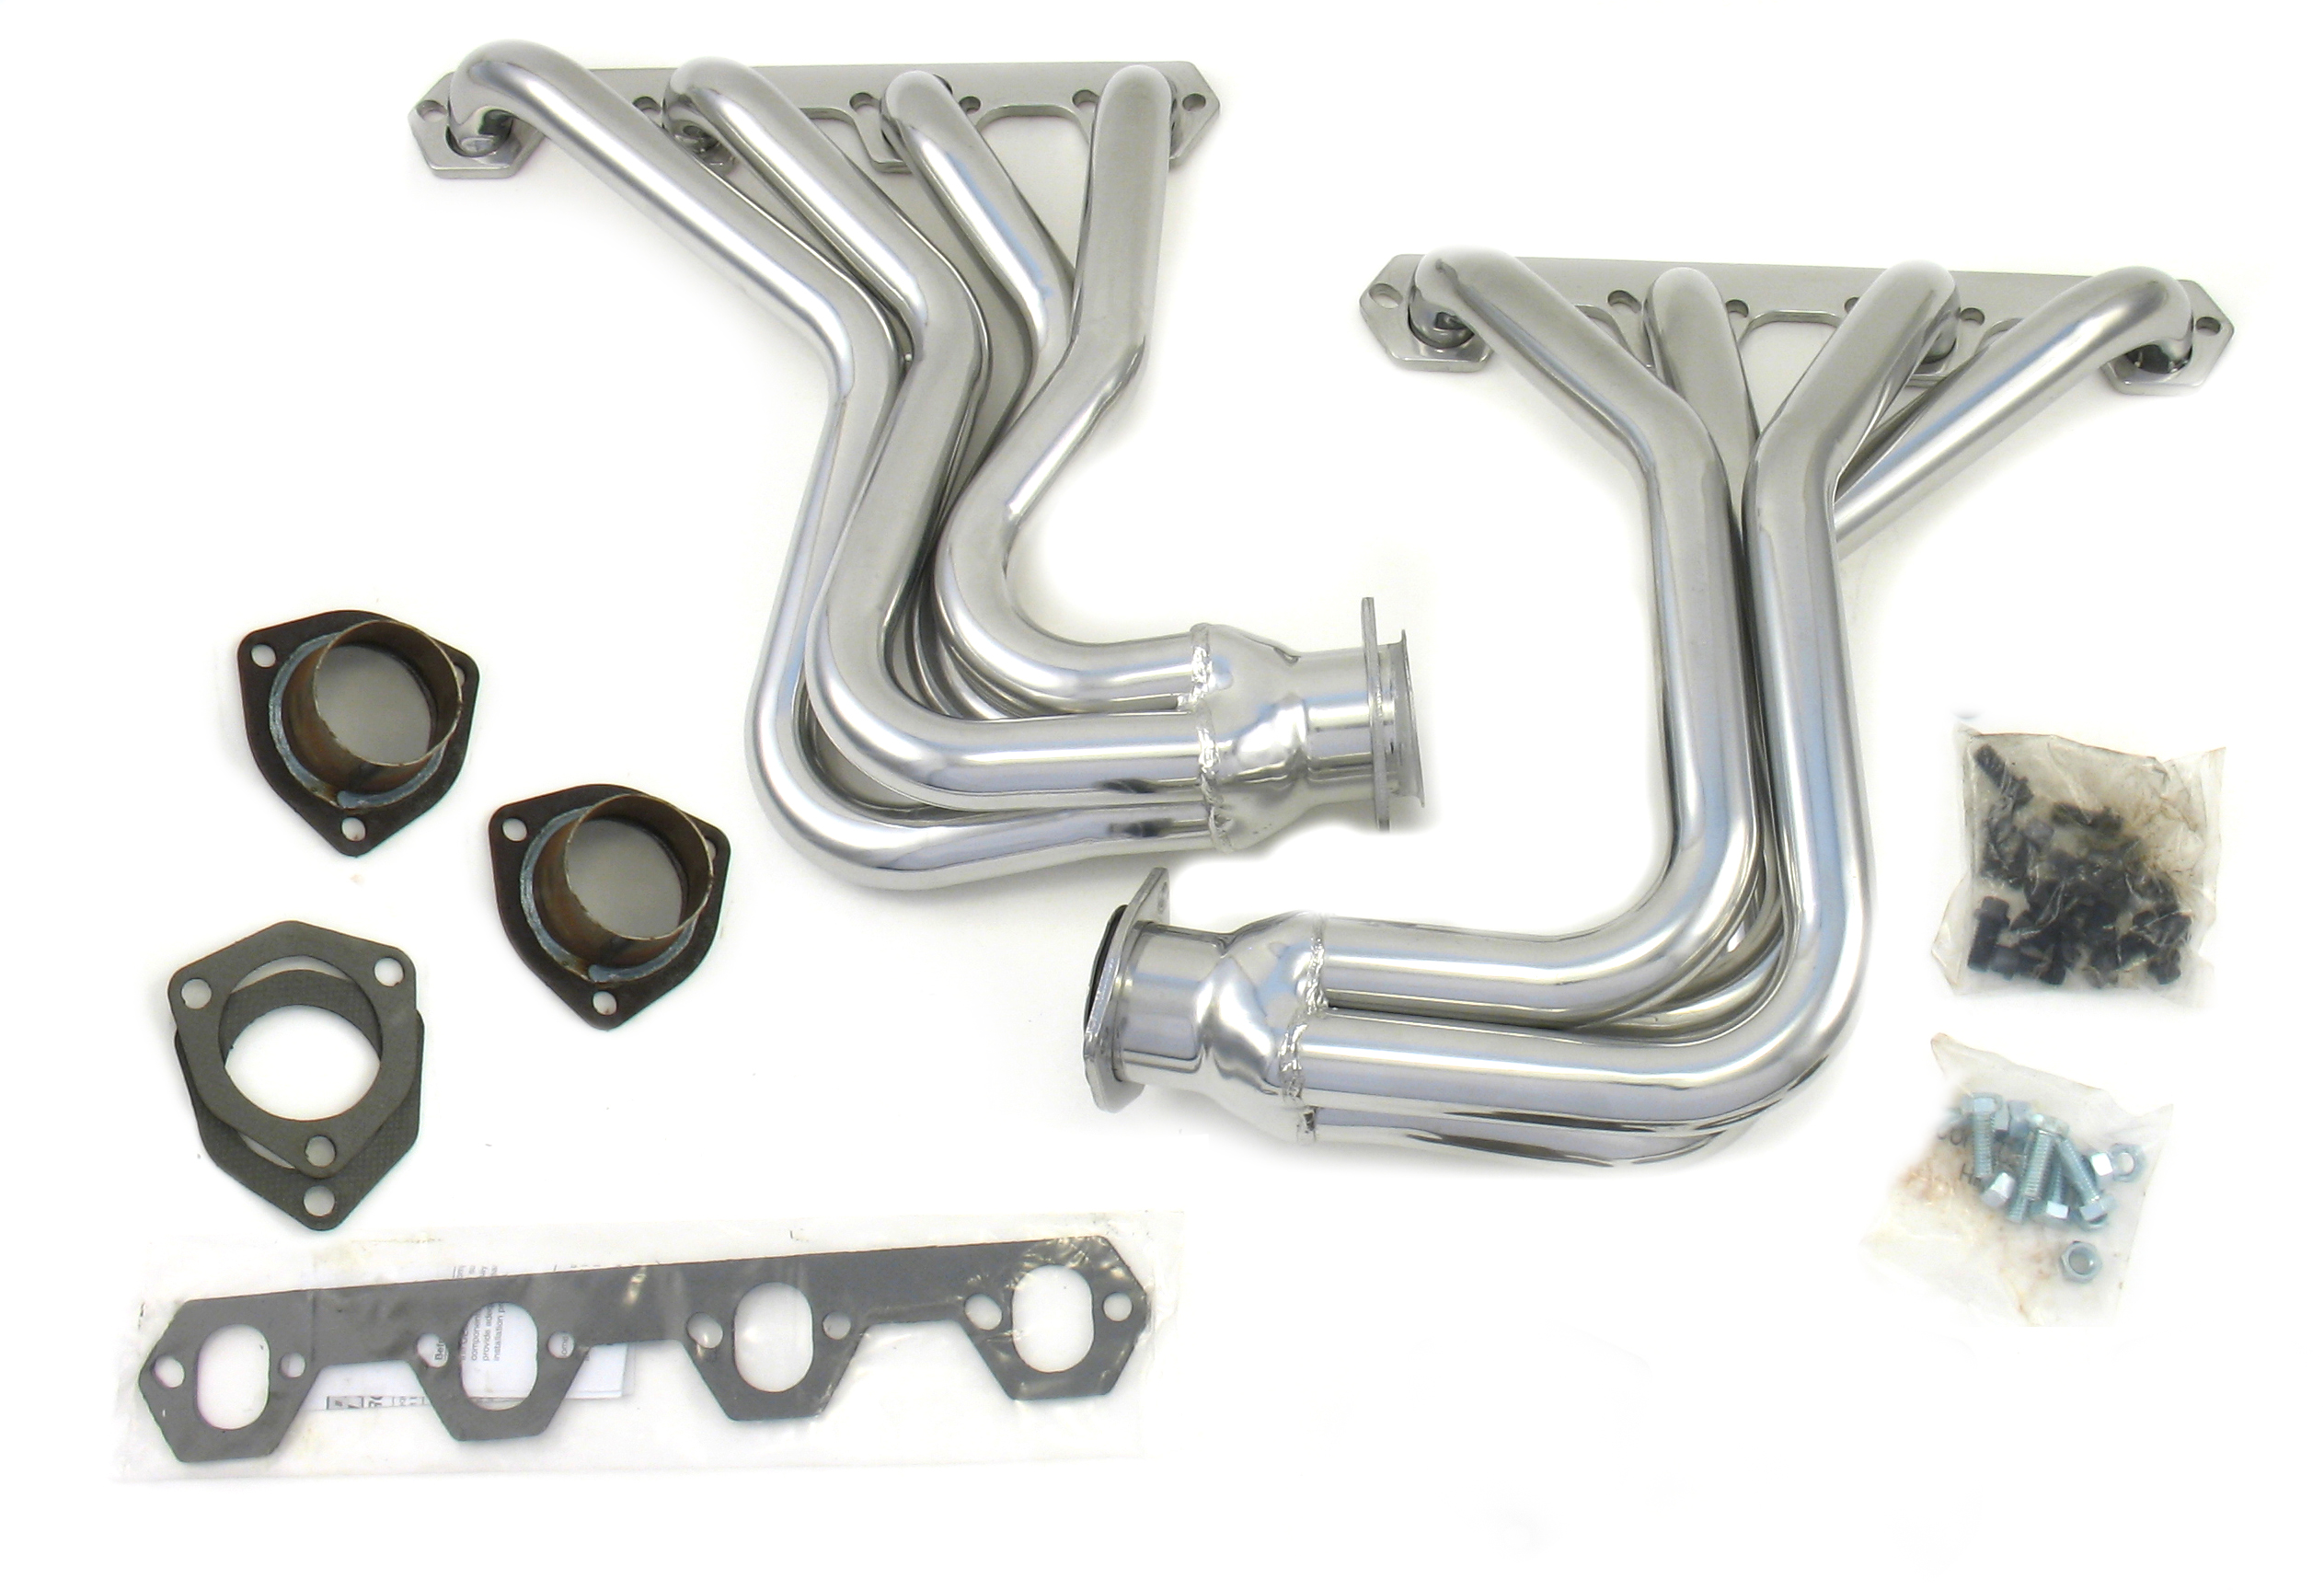 Patriot Exhaust H8429-1 Headers & Exhaust Manifolds